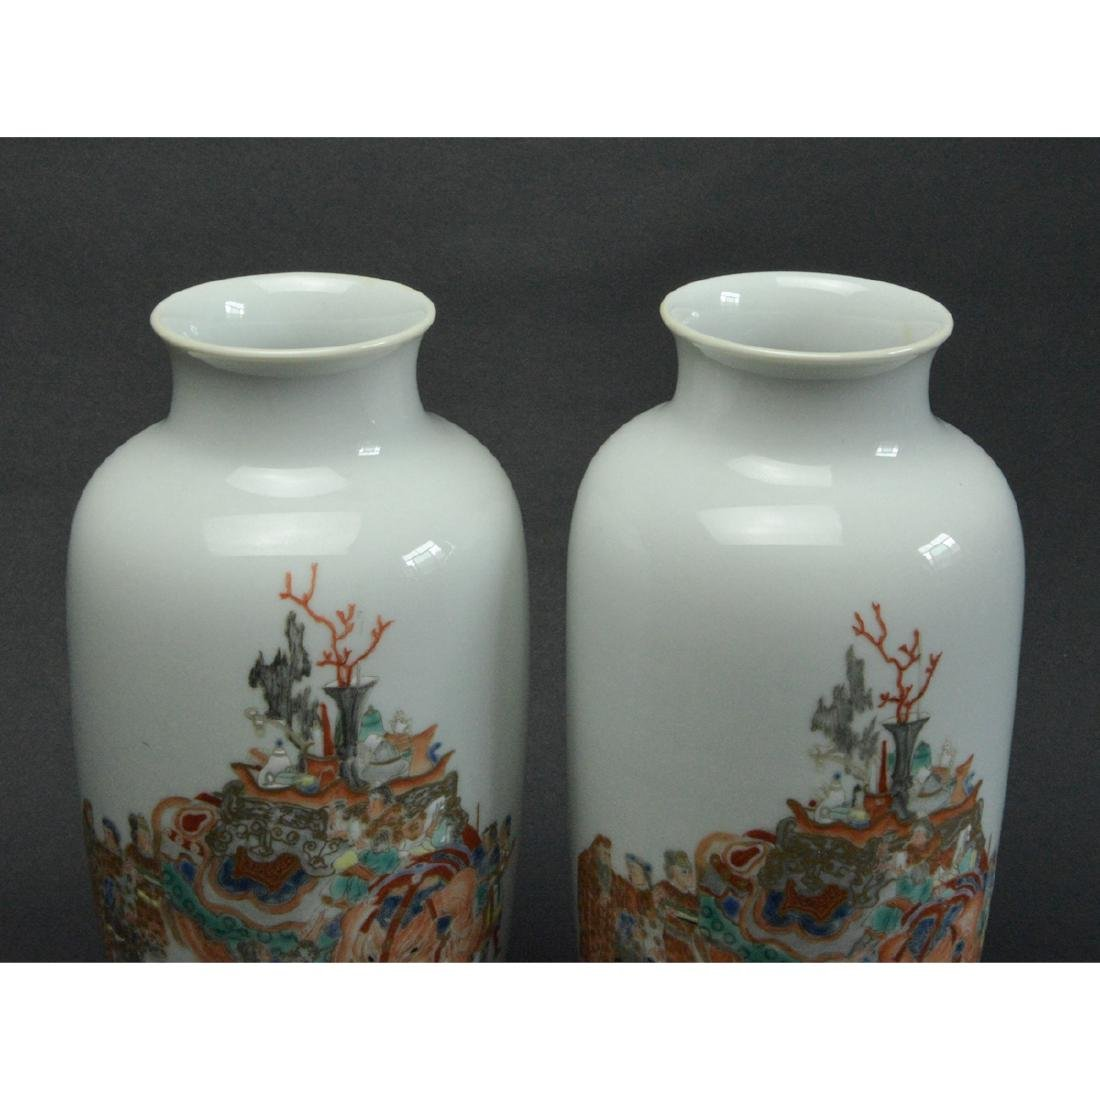 CHINESE FAMILLE ROSE PORCELAIN VASES, PAIR - 4